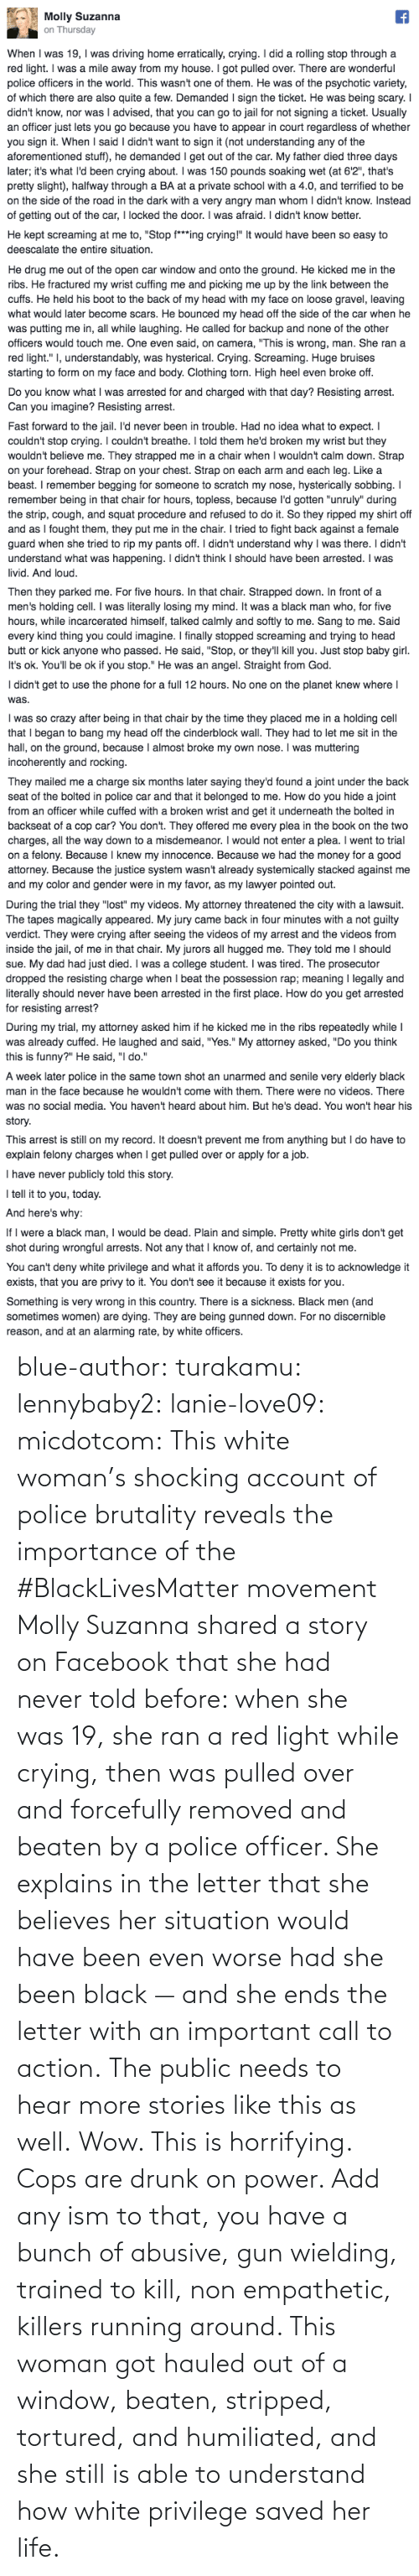 add: blue-author: turakamu:  lennybaby2:  lanie-love09:  micdotcom:  This white woman's shocking account of police brutality reveals the importance of the #BlackLivesMatter movement Molly Suzanna shared a story on Facebook that she had never told before: when she was 19, she ran a red light while crying, then was pulled over and forcefully removed and beaten by a police officer. She explains in the letter that she believes her situation would have been even worse had she been black — and she ends the letter with an important call to action.  The public needs to hear more stories like this as well.  Wow. This is horrifying.  Cops are drunk on power. Add any ism to that, you have a bunch of abusive, gun wielding, trained to kill, non empathetic, killers running around.    This woman got hauled out of a window, beaten, stripped, tortured, and humiliated, and she still is able to understand how white privilege saved her life.